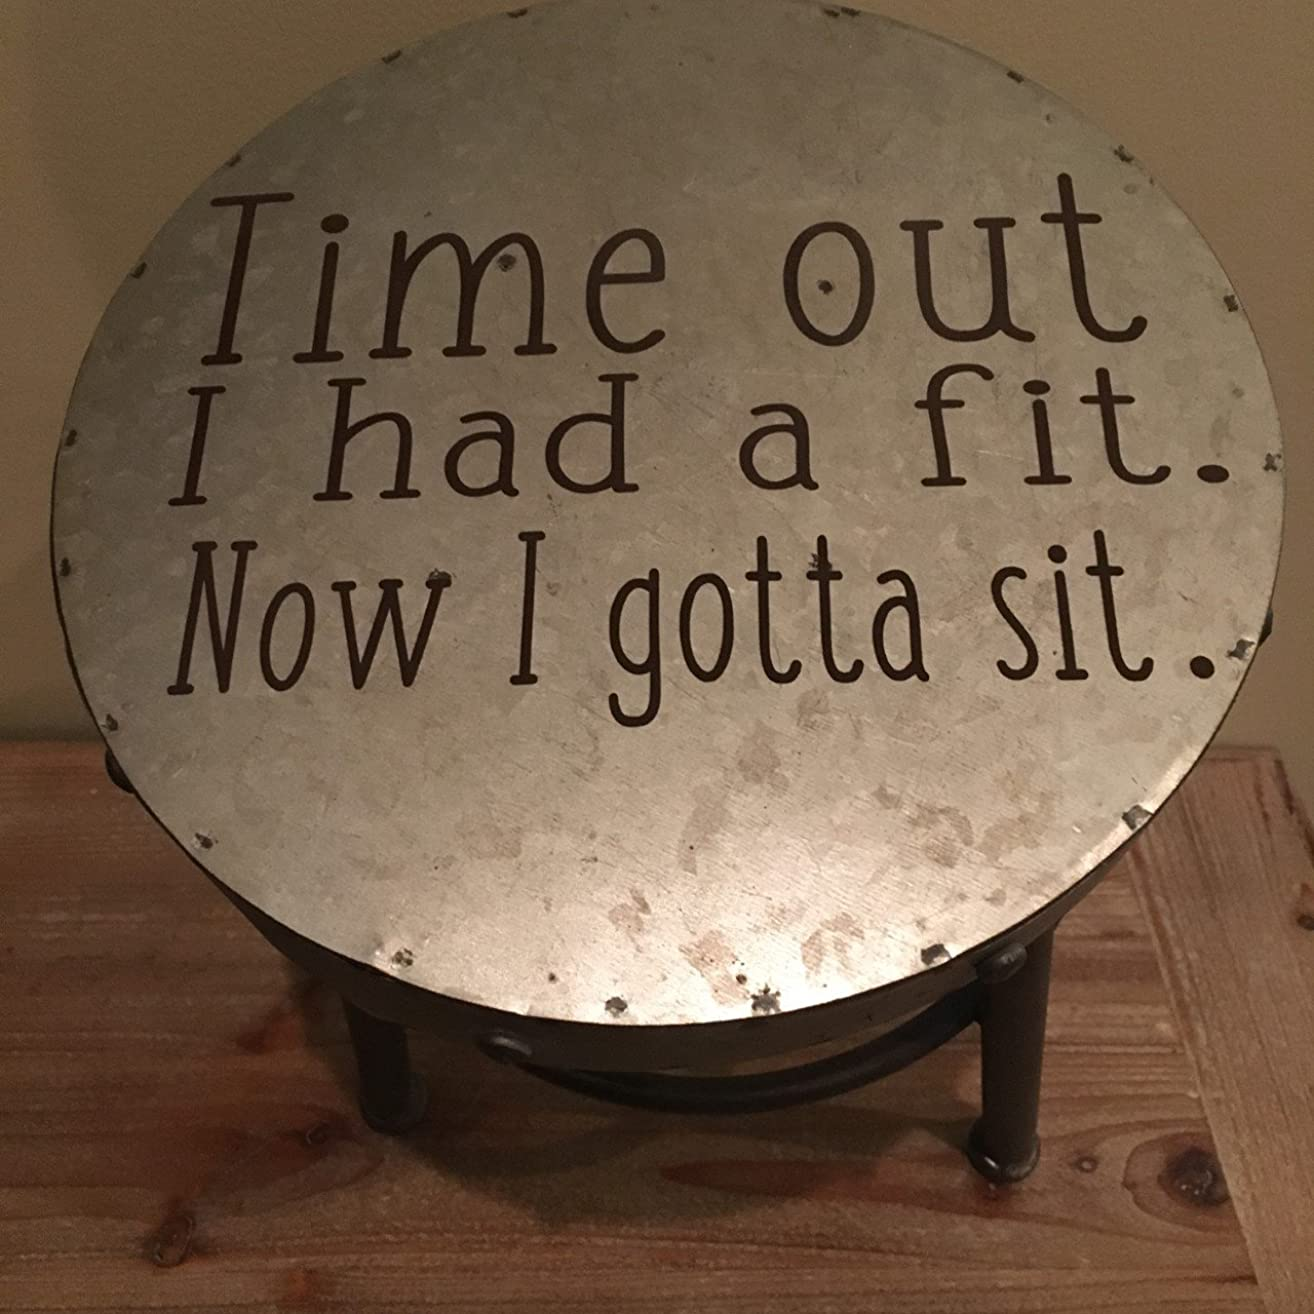 TIME OUT STOOL (Metal) I Had A Fit Now I Gotta SIT,